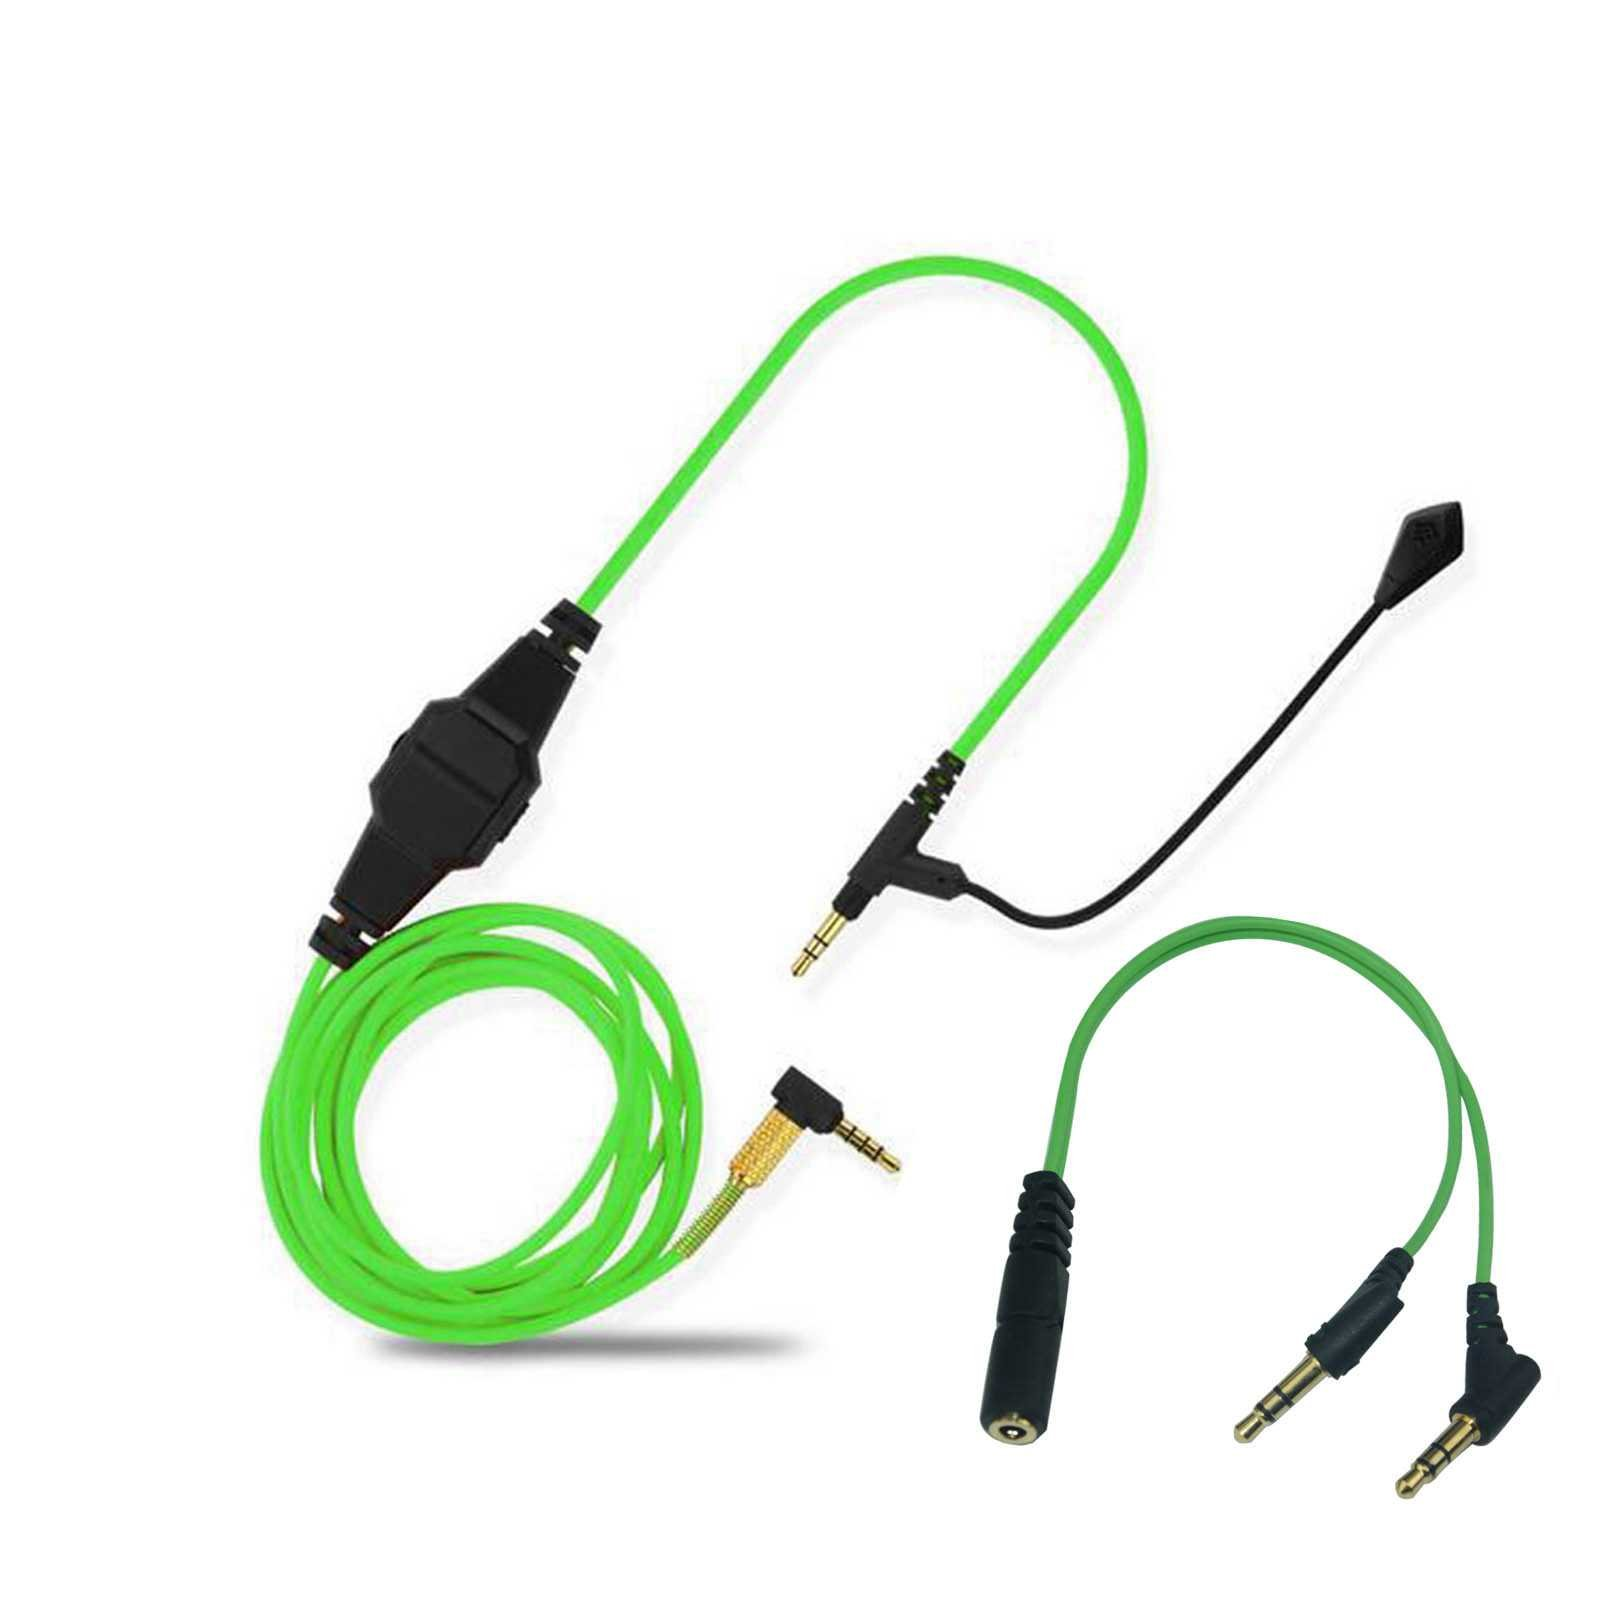 Lovinstar Replacement Cable Boom mic Volume for PS4 PC Xbox One to V-Moda & Most 3.5mm Input Headphone Aduio Cable Computer Game (Green)